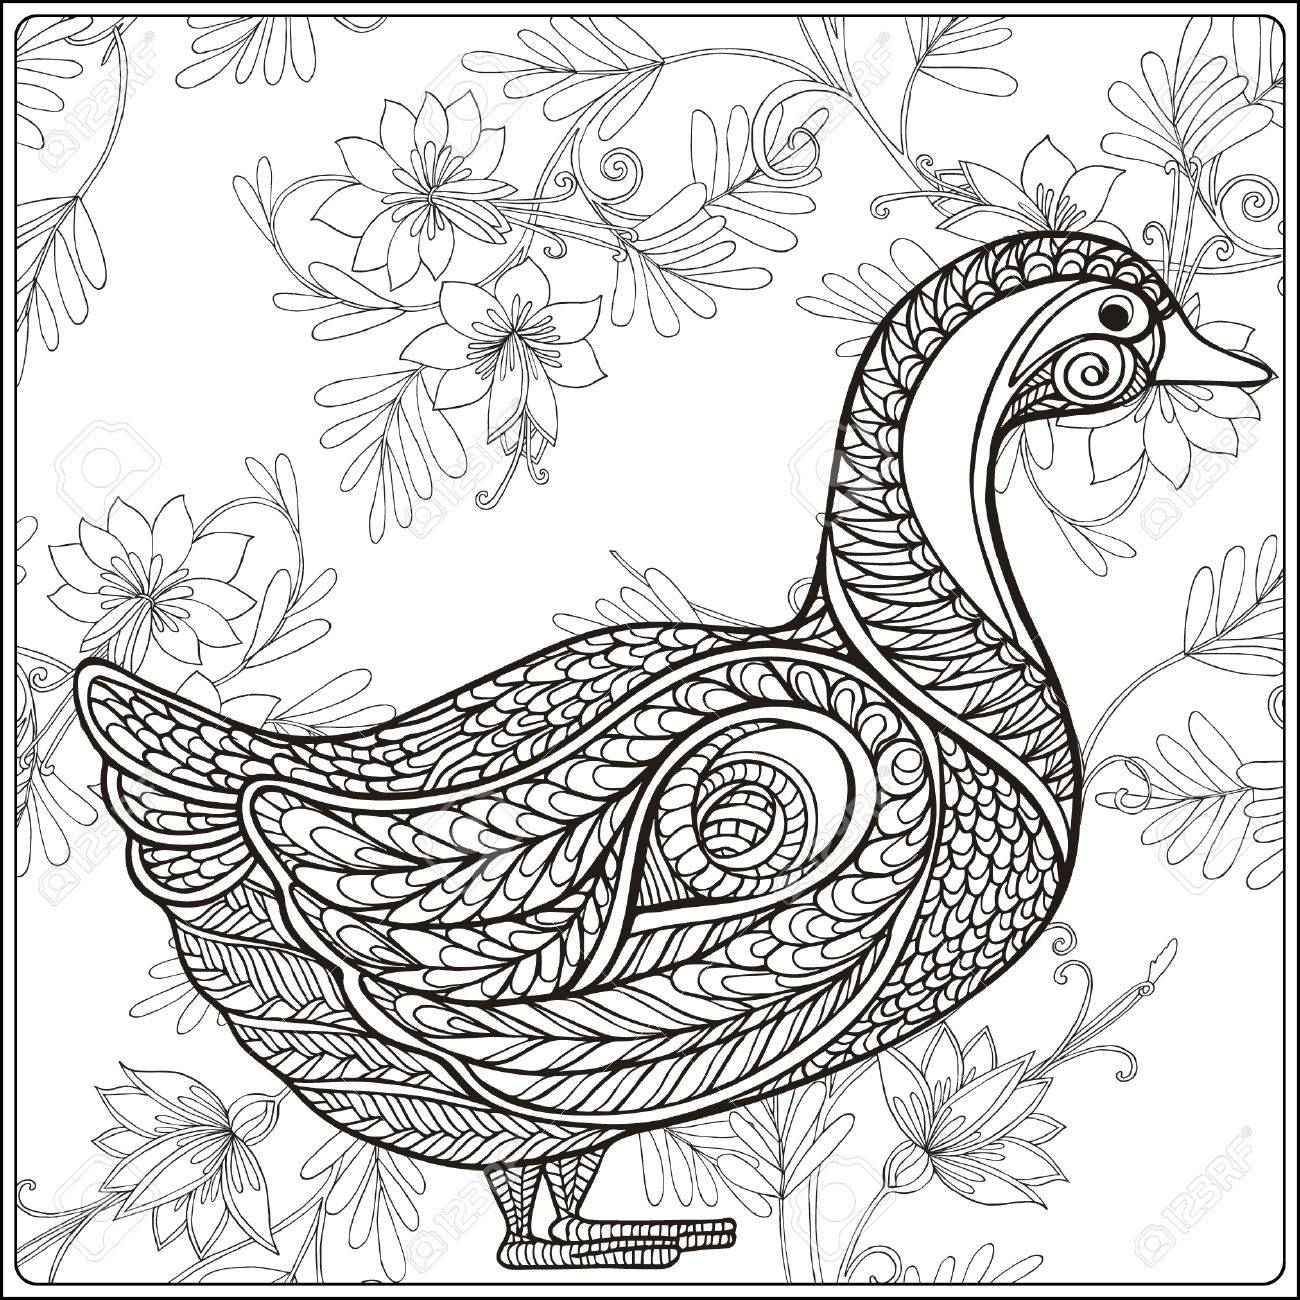 1300x1300 Duck On Floral Background. Coloring Book For Adult And Older